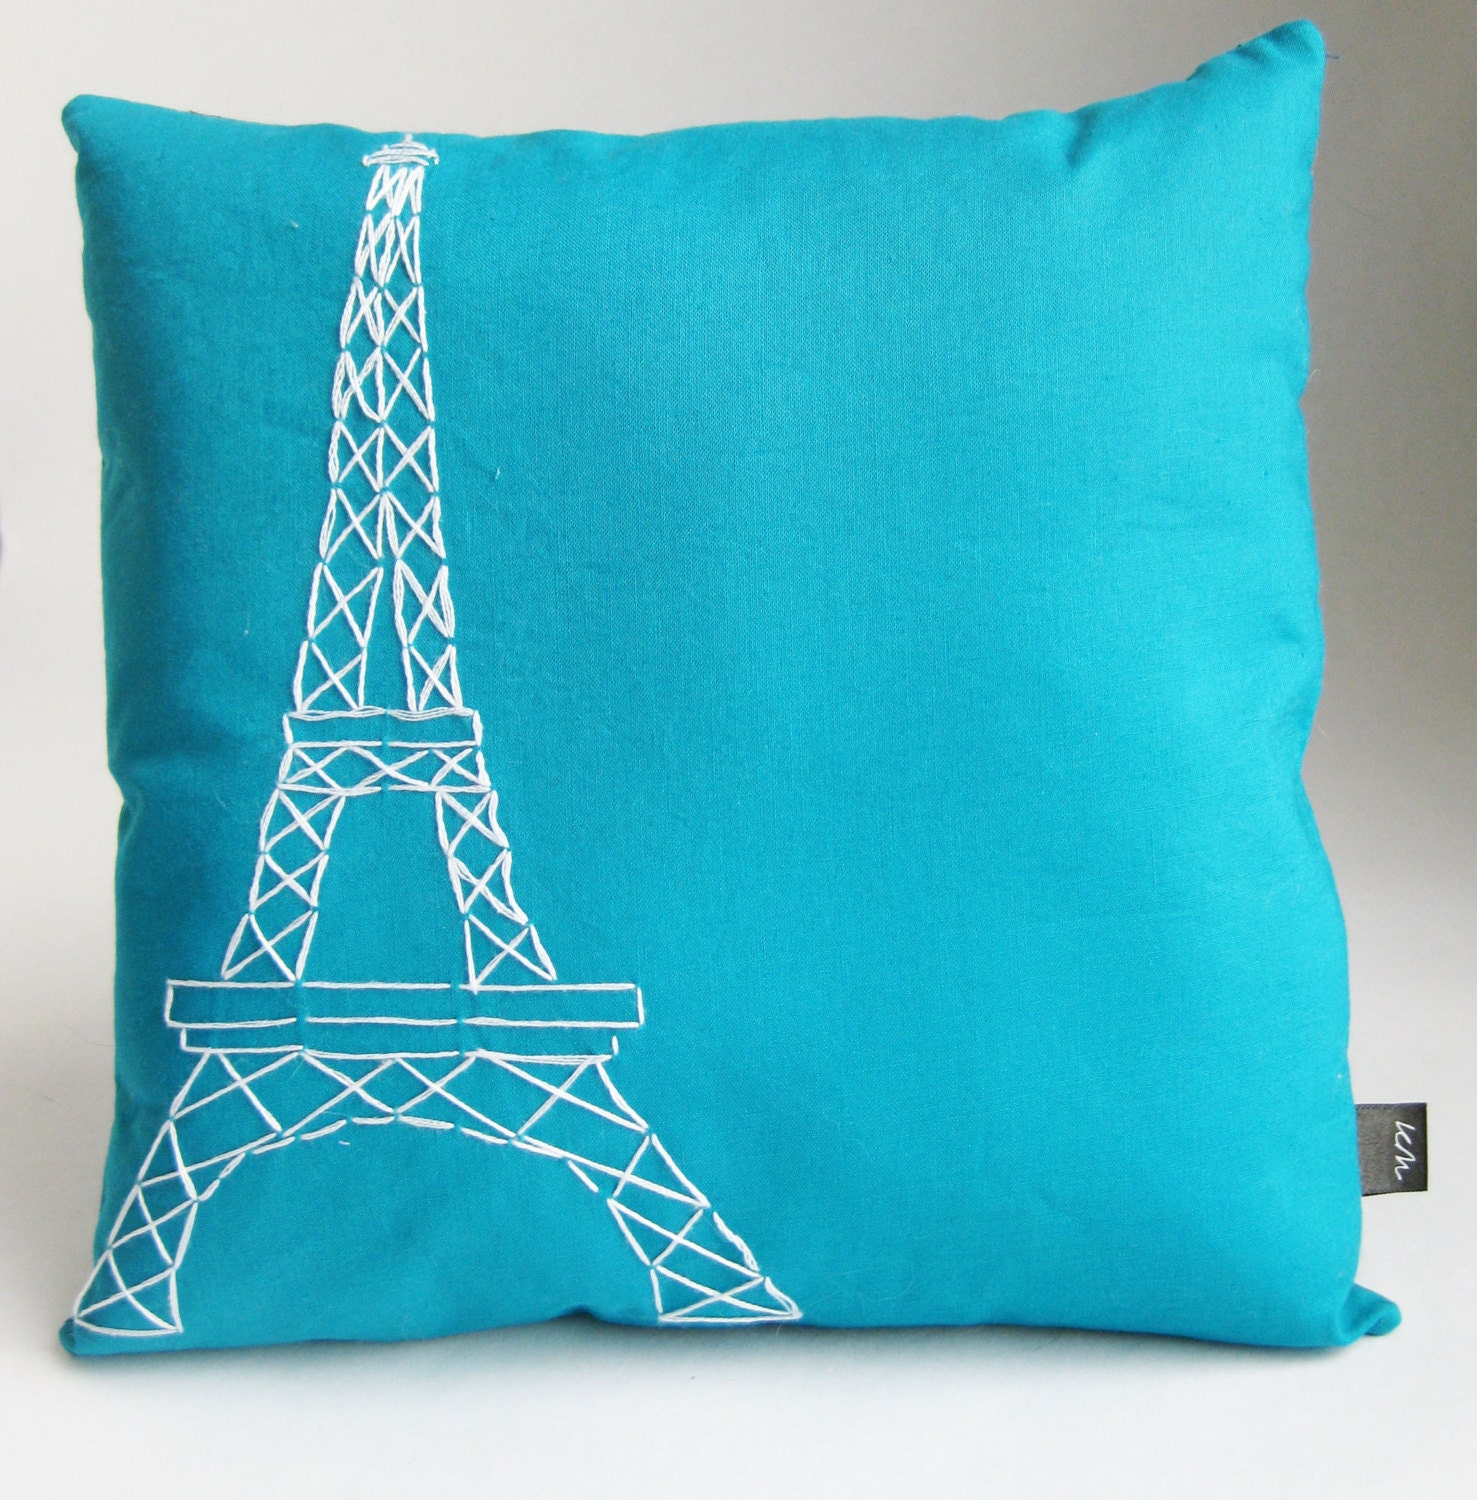 Paris Bedding On Etsy A Global Handmade And Vintage